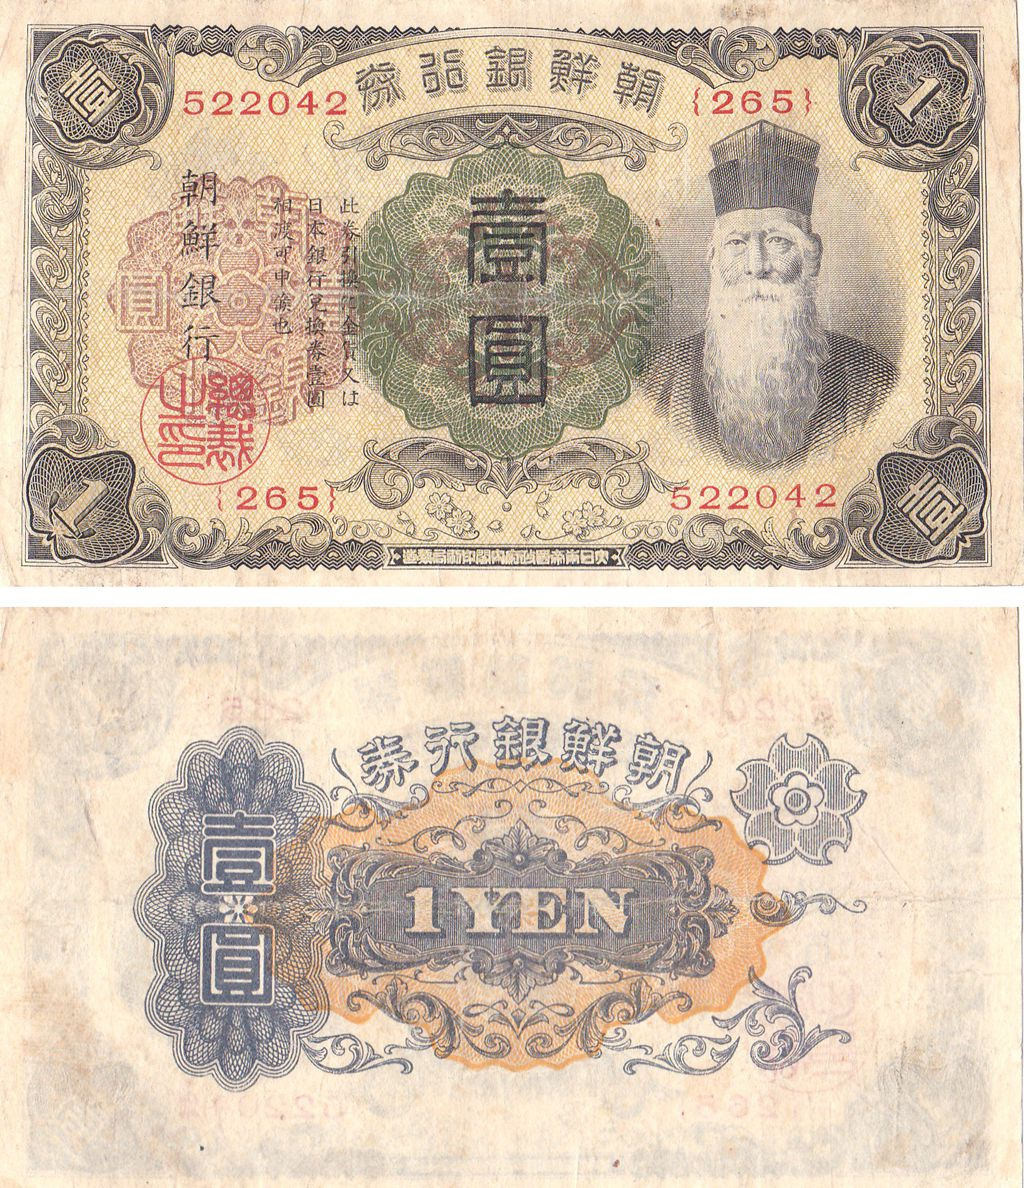 L1010, Bank of Korea (Chosen), 1 Won (Yen), 1932 Issue P-29